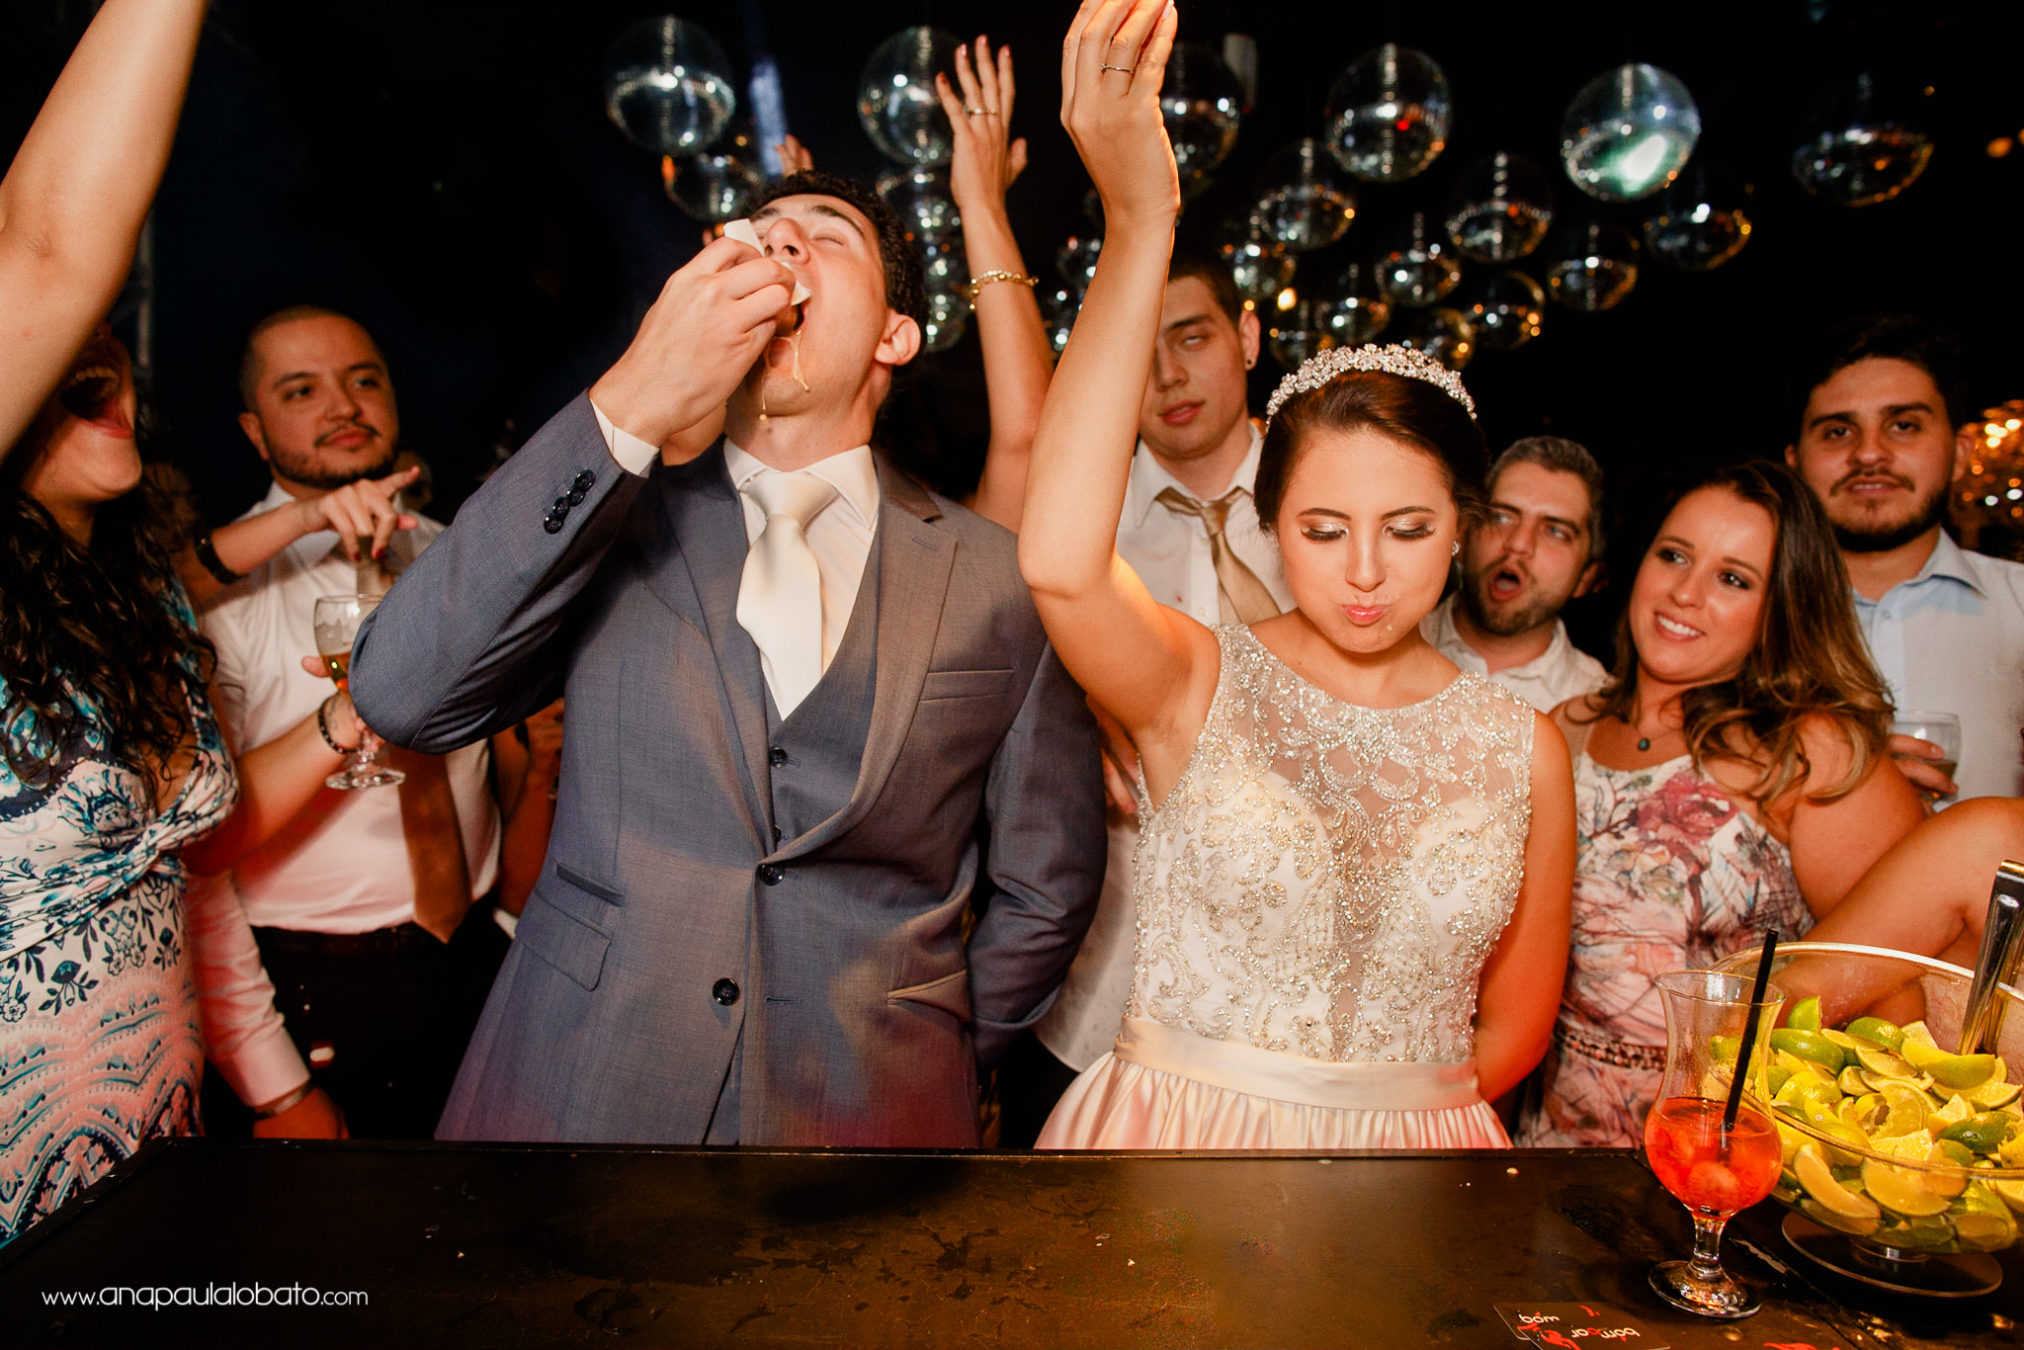 Bride and groom have a special toast with shots